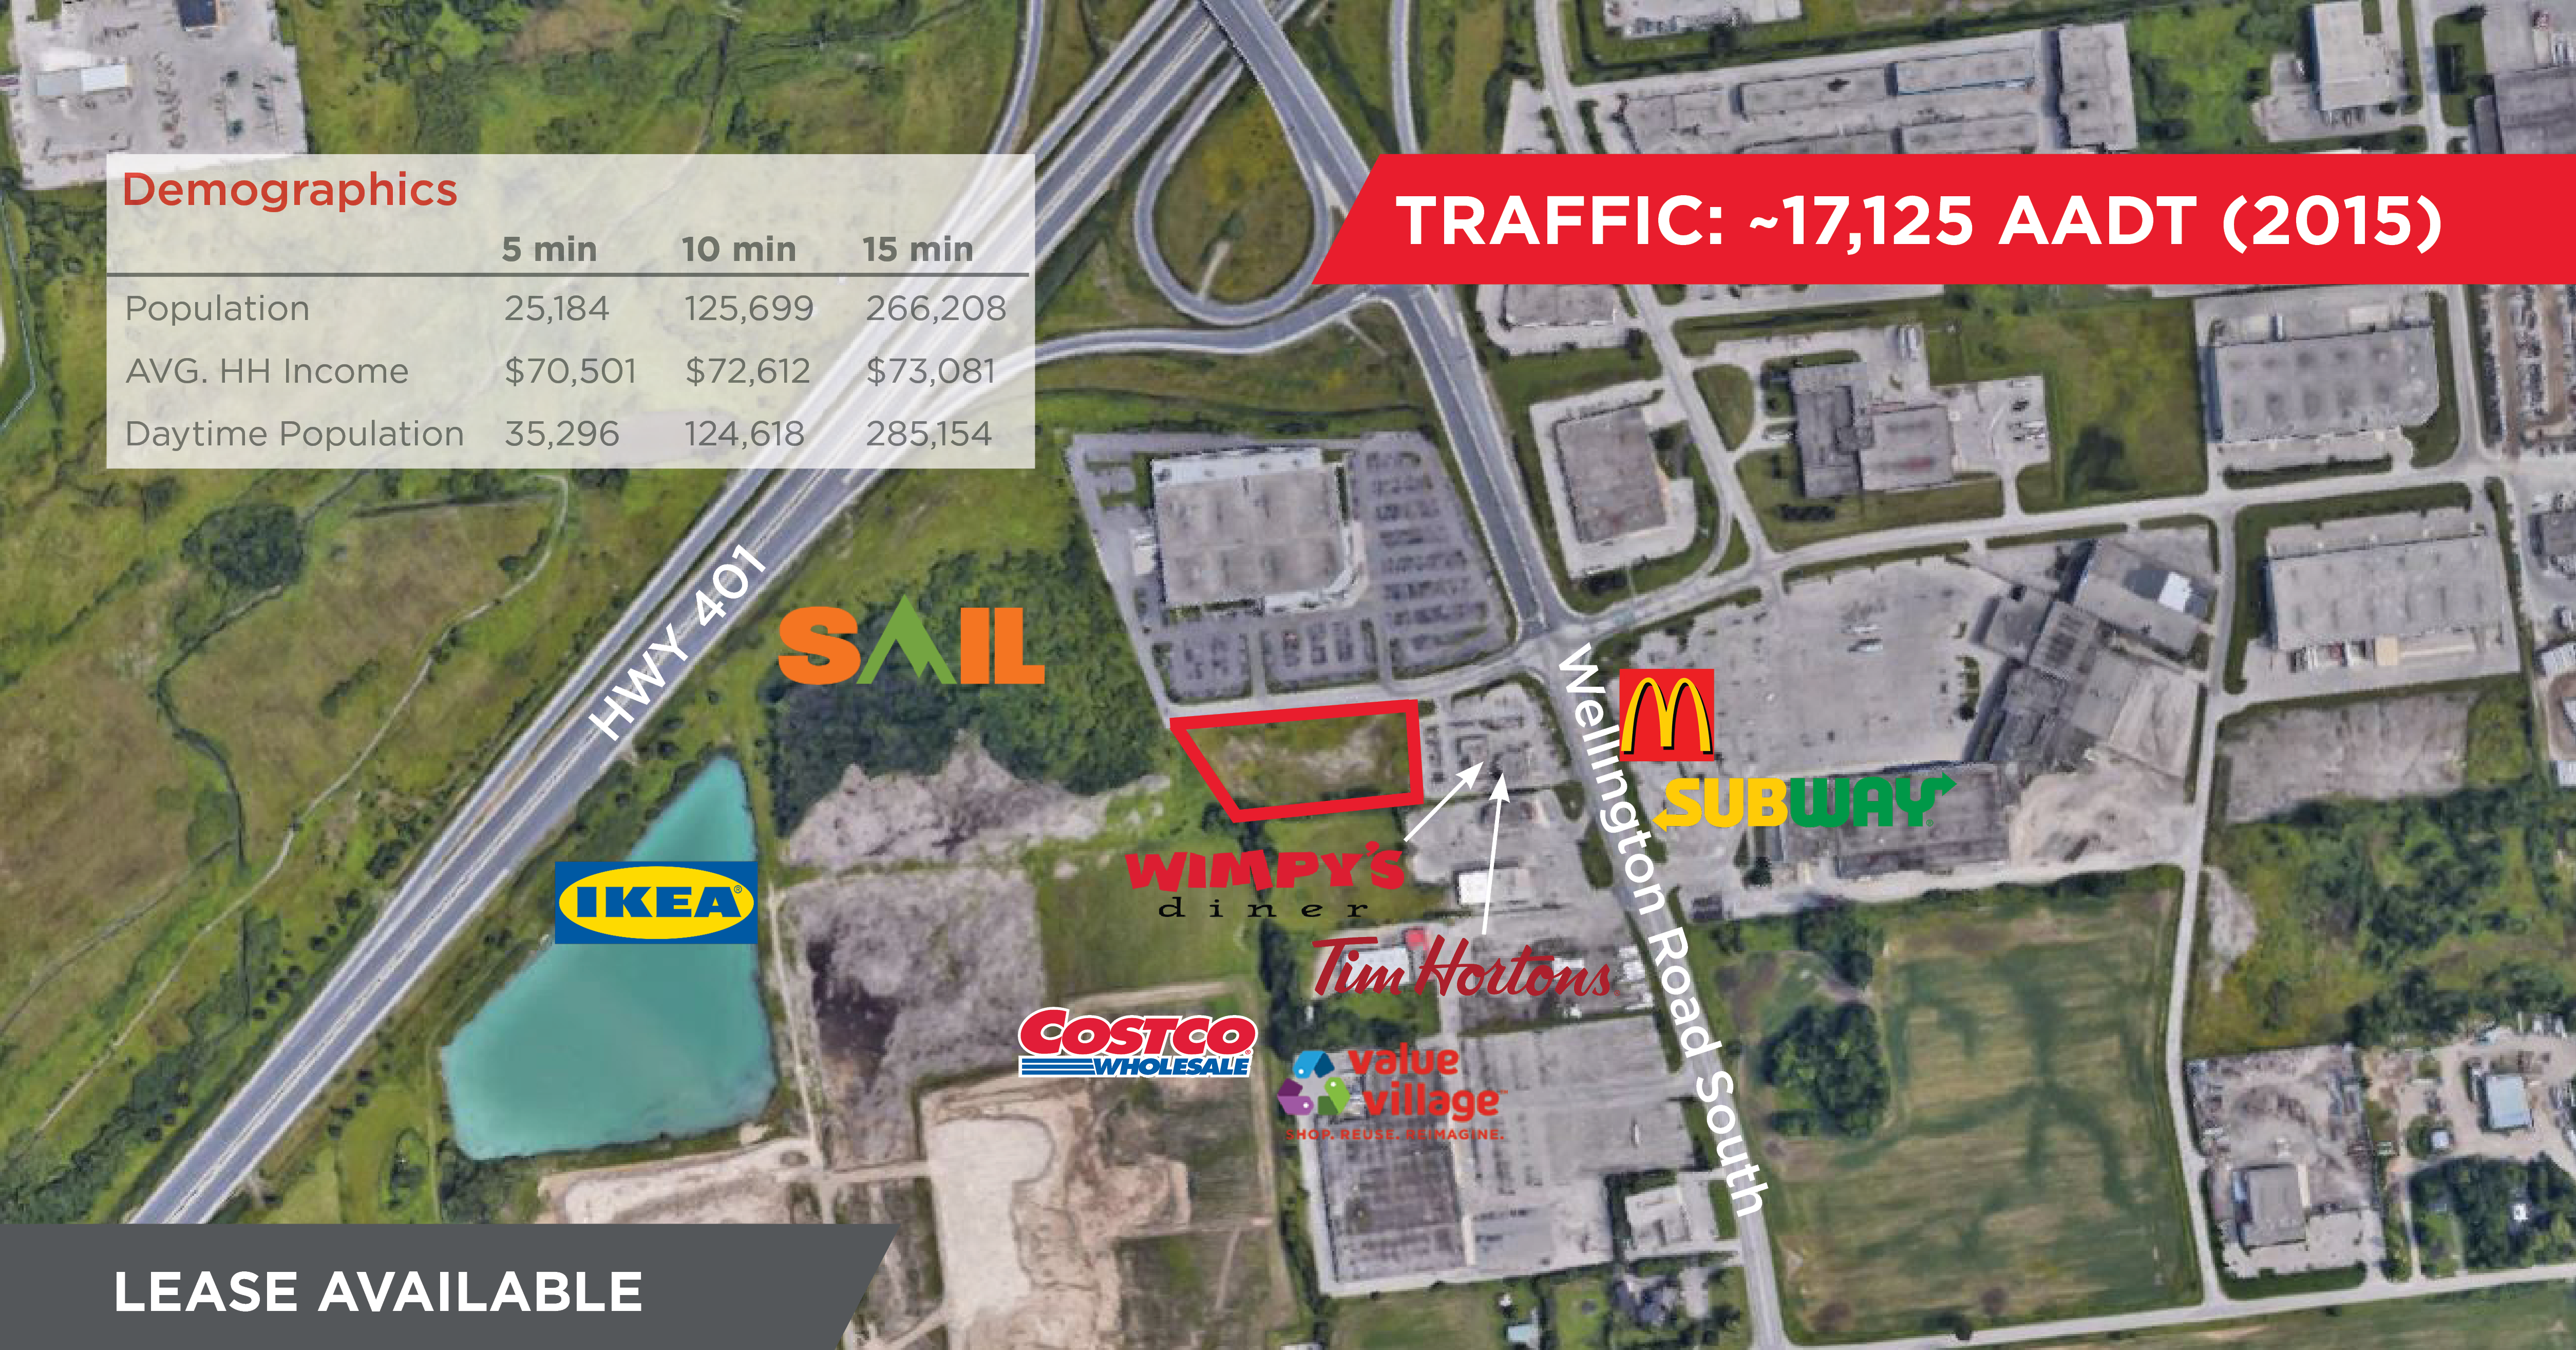 4343 Wellington Road South, London | New Retail Development for Lease